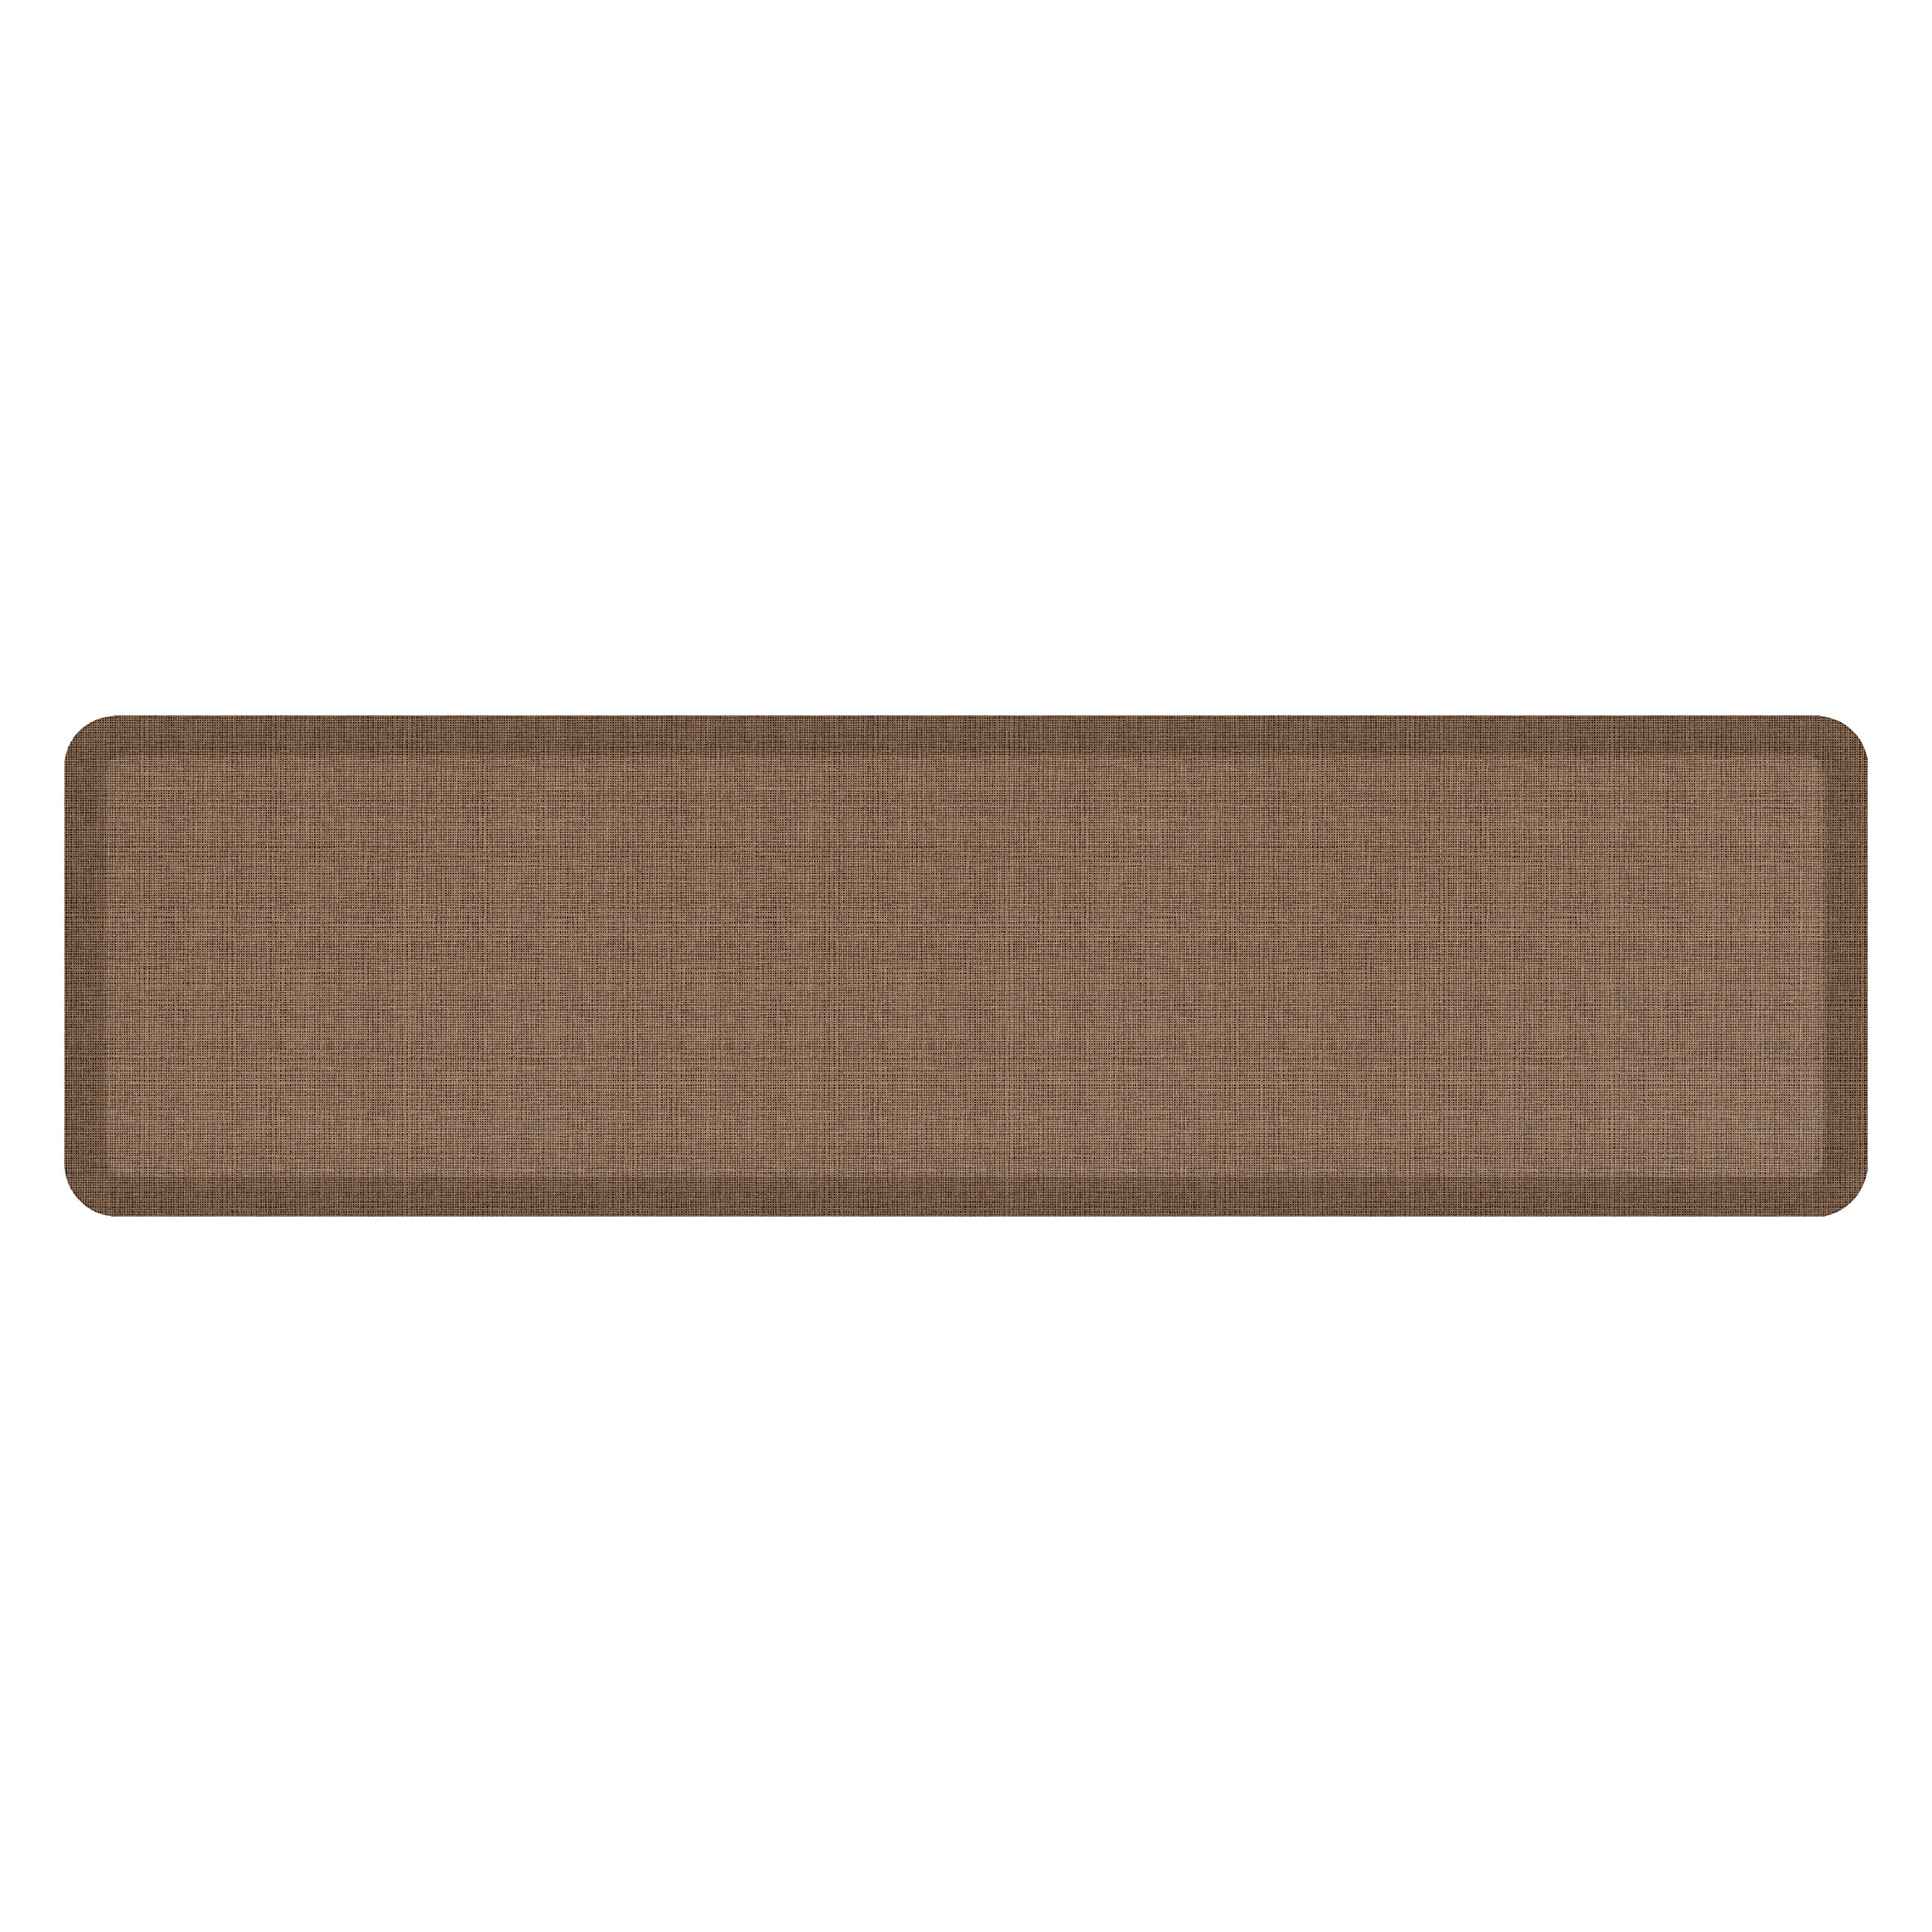 "NewLife by GelPro Anti-Fatigue Designer Comfort Kitchen Floor Mat, 20x72'', Tweed Light Walnut Stain Resistant Surface with 3/4"" Thick Ergo-foam Core for Health and Wellness by NewLife by GelPro"